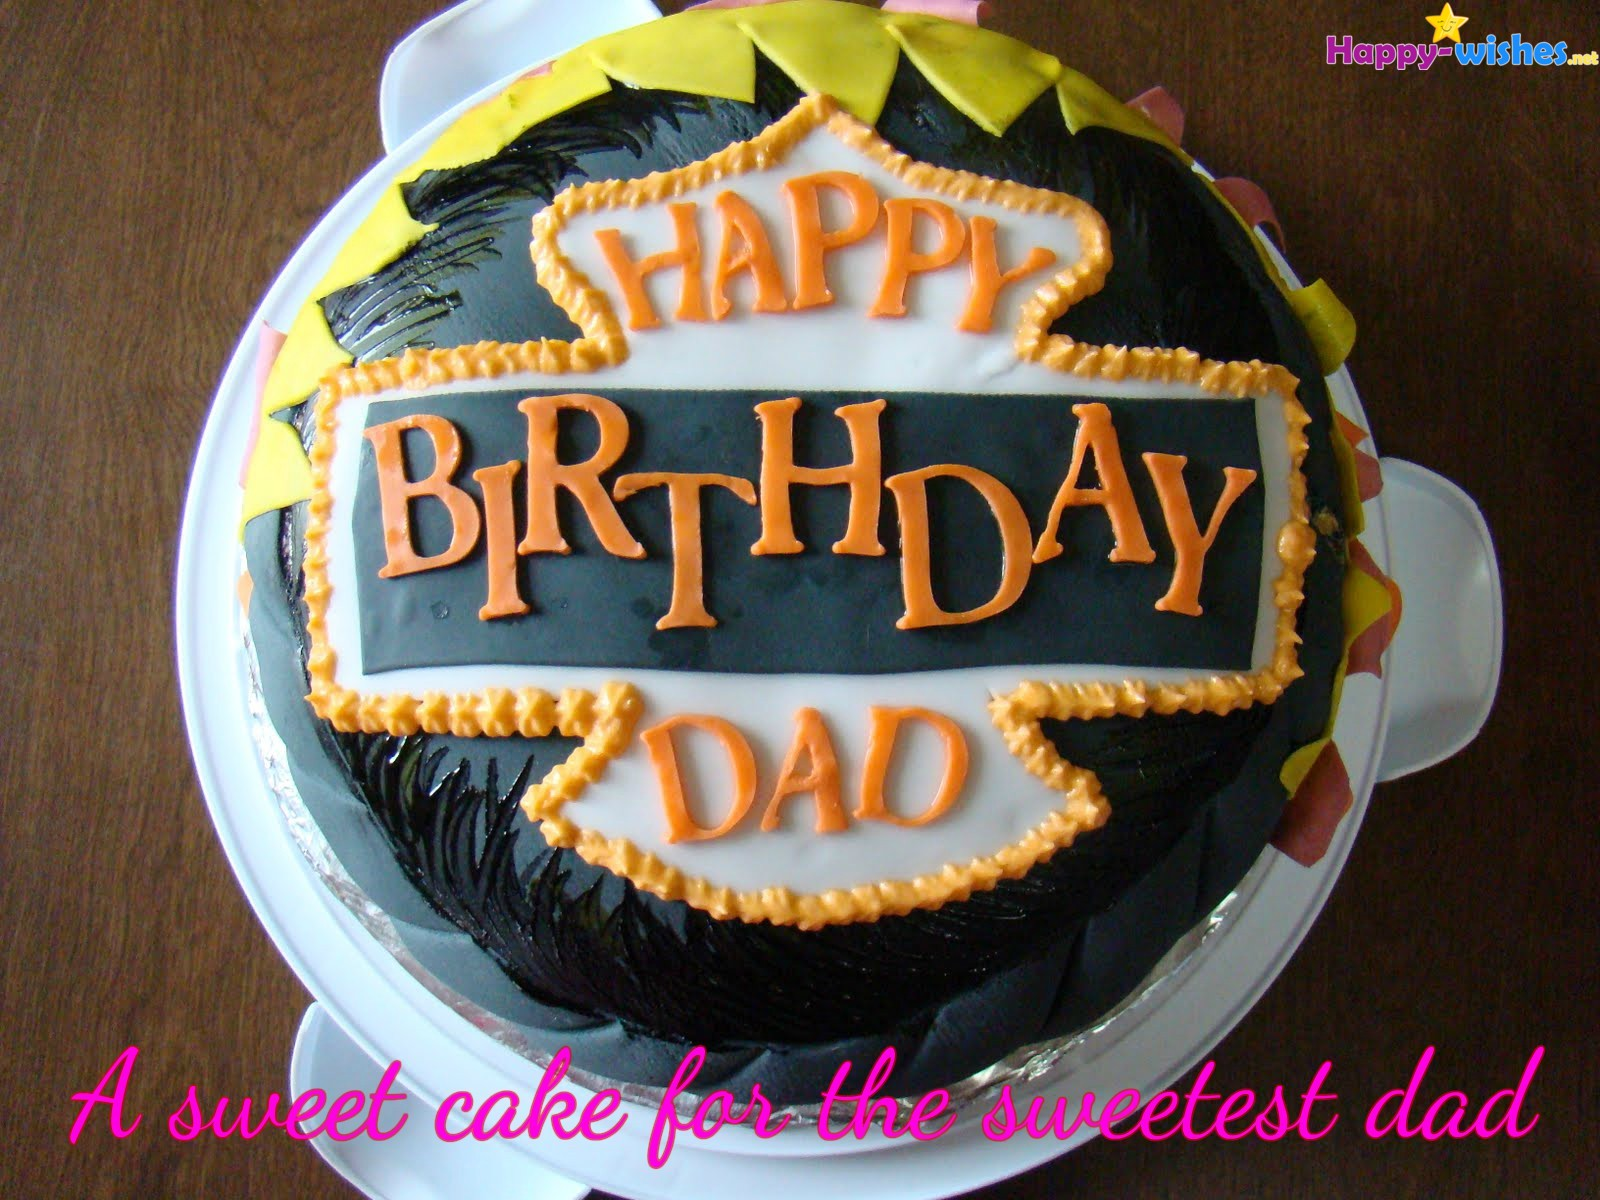 Enjoyable Happy Birthday Wishes For Dad Quotes Images And Memes Funny Birthday Cards Online Alyptdamsfinfo